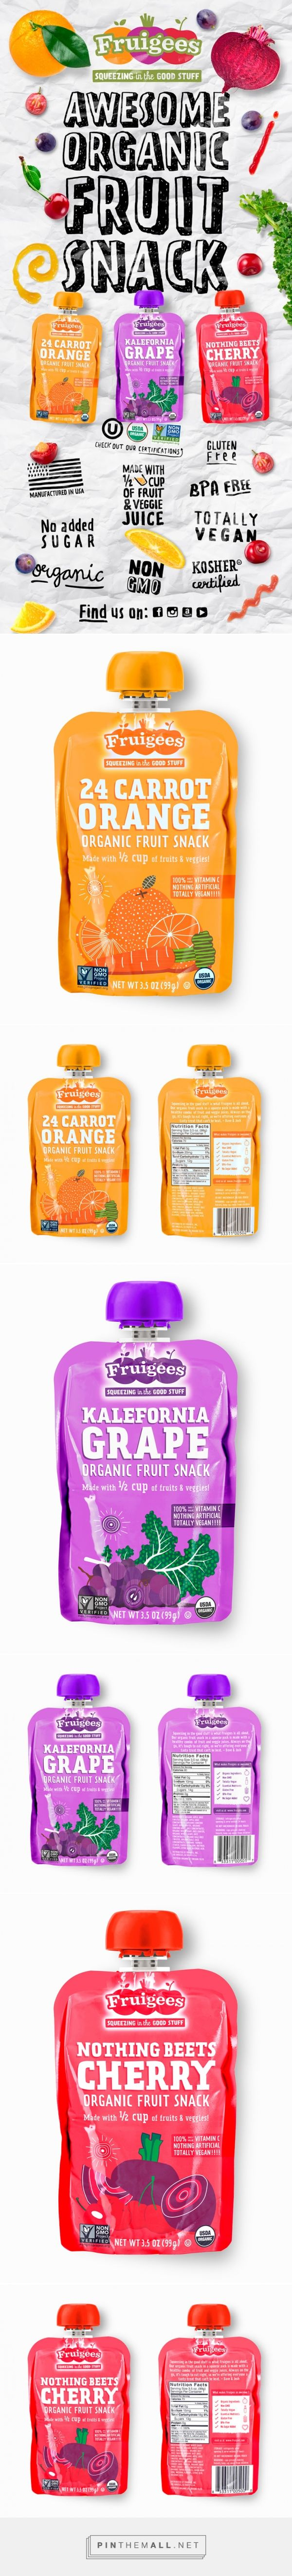 Fruigees - Packaging of the World - Creative Package Design Gallery - http://www.packagingoftheworld.com/2016/01/fruigees.html